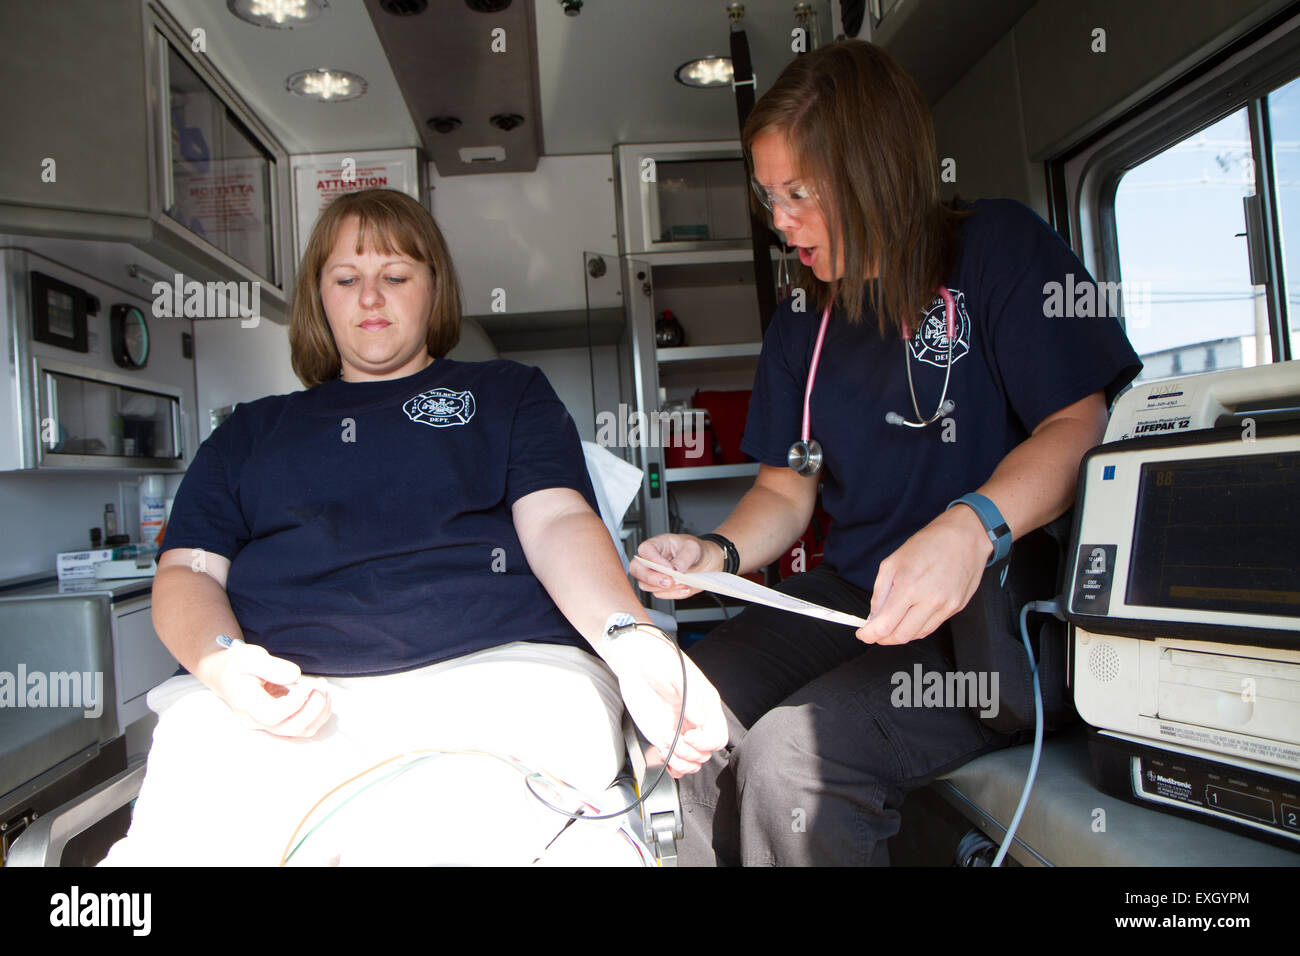 Female paramedics working in the back of an ambulance. Rural volunteer US fire department. Stock Photo